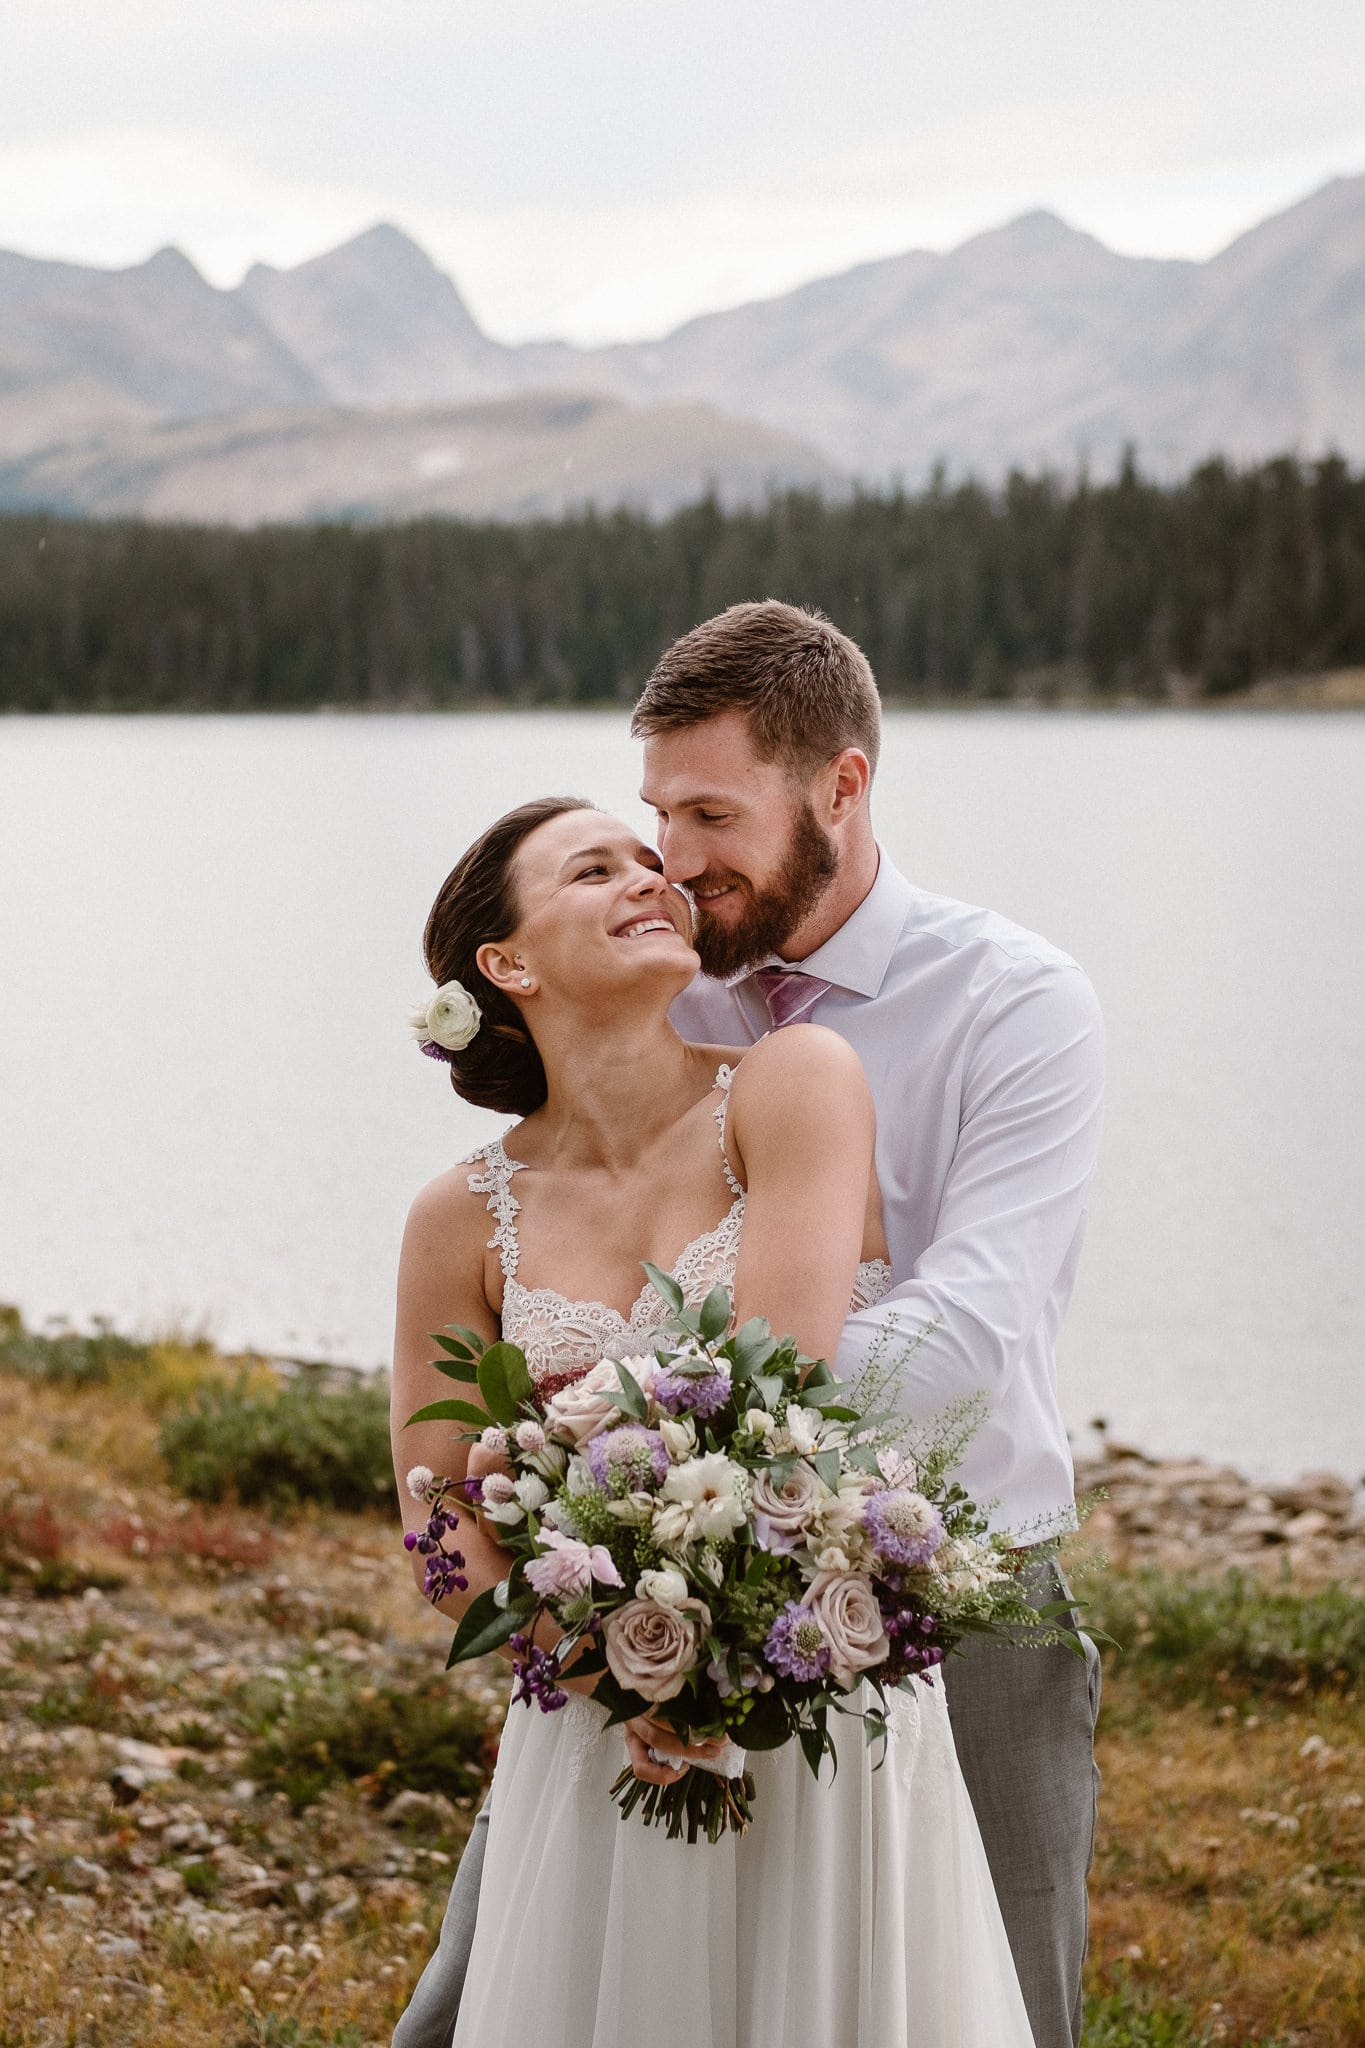 Colorado mountain elopement photographer, alpine lake adventure wedding, Boulder wedding photographer, bride and groom portraits in mountains, laidback boho wedding, hiking elopement, bouquet by Fawns Leap, pale pink and purple florals